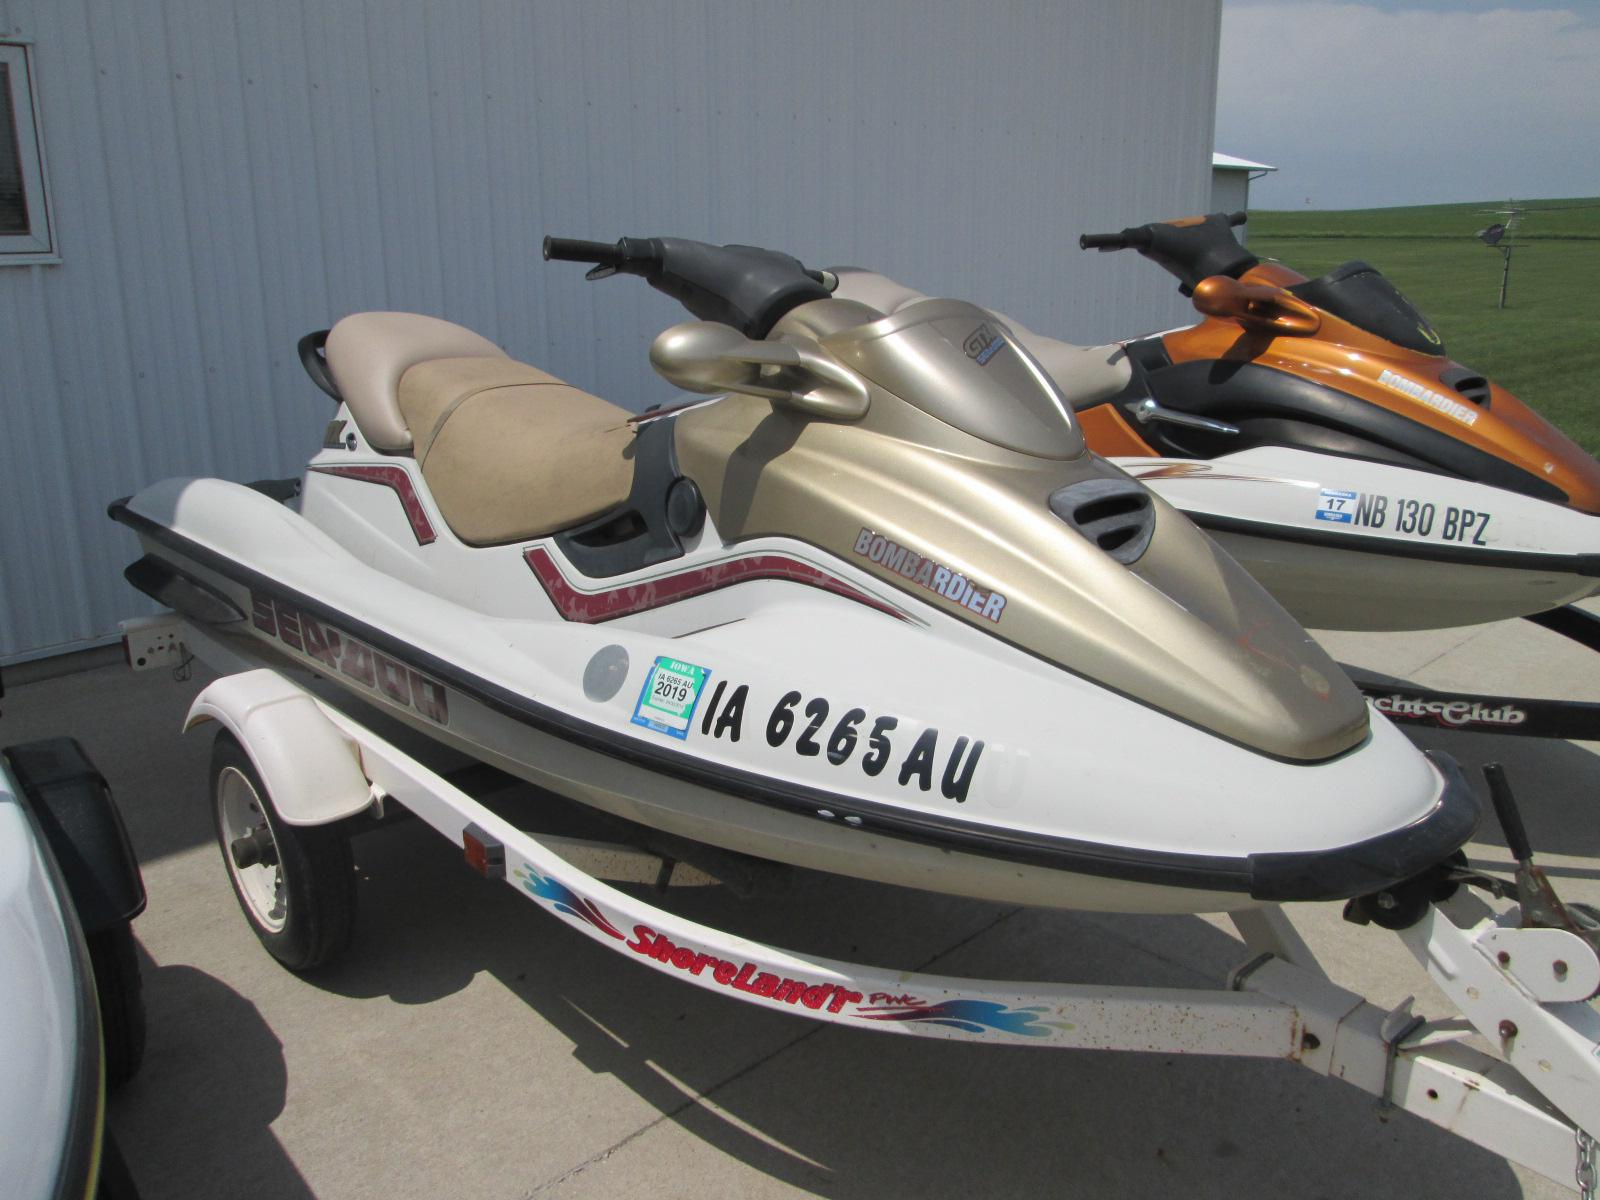 Inventory from Sea-Doo and Yamaha Sioux City Yamaha/Can-Am, Inc